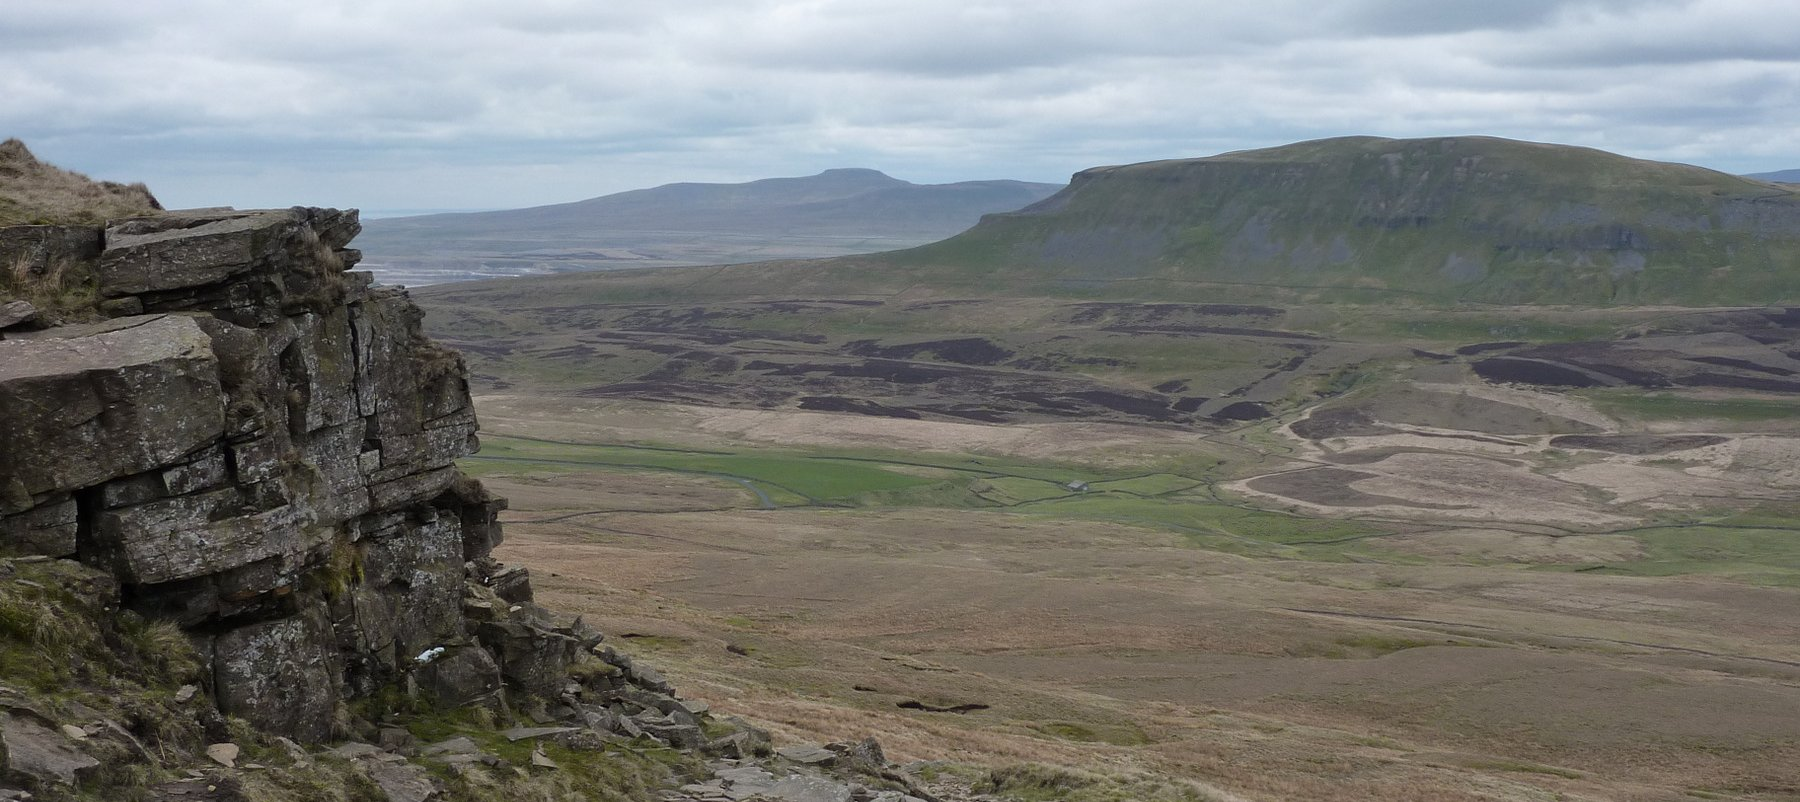 Looking across to Pen-y-ghent from the descent off Fountains Fell